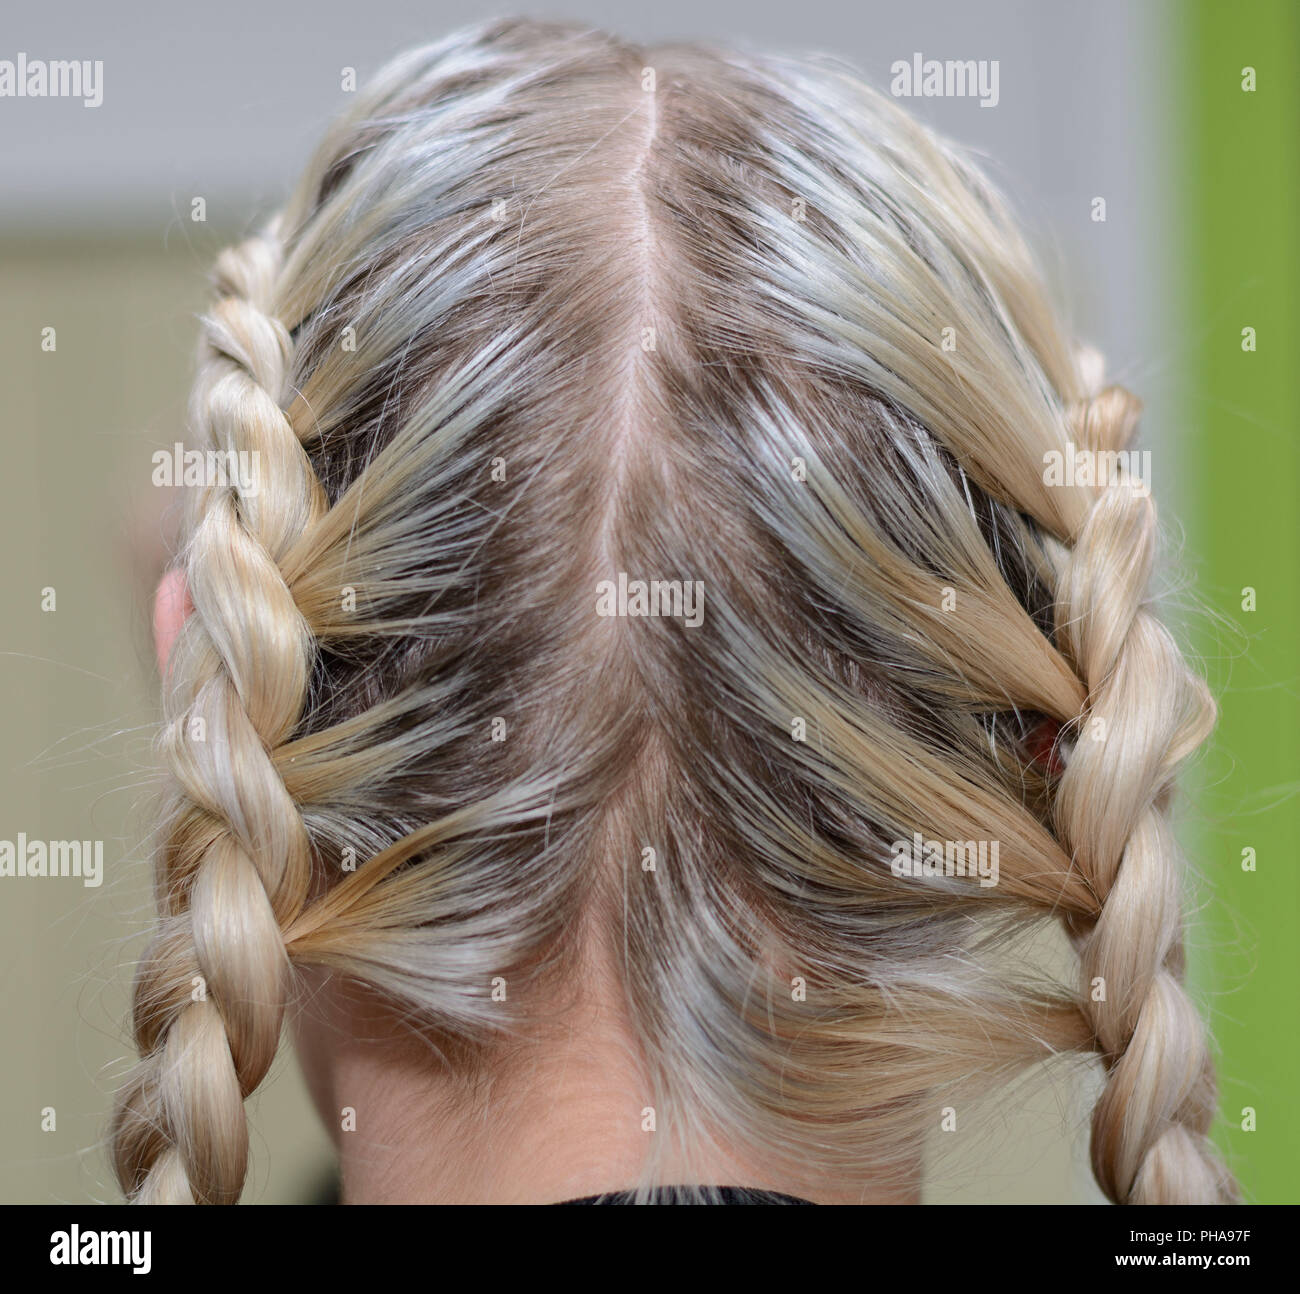 Blonde has braided long hair to two plaits - Stock Image